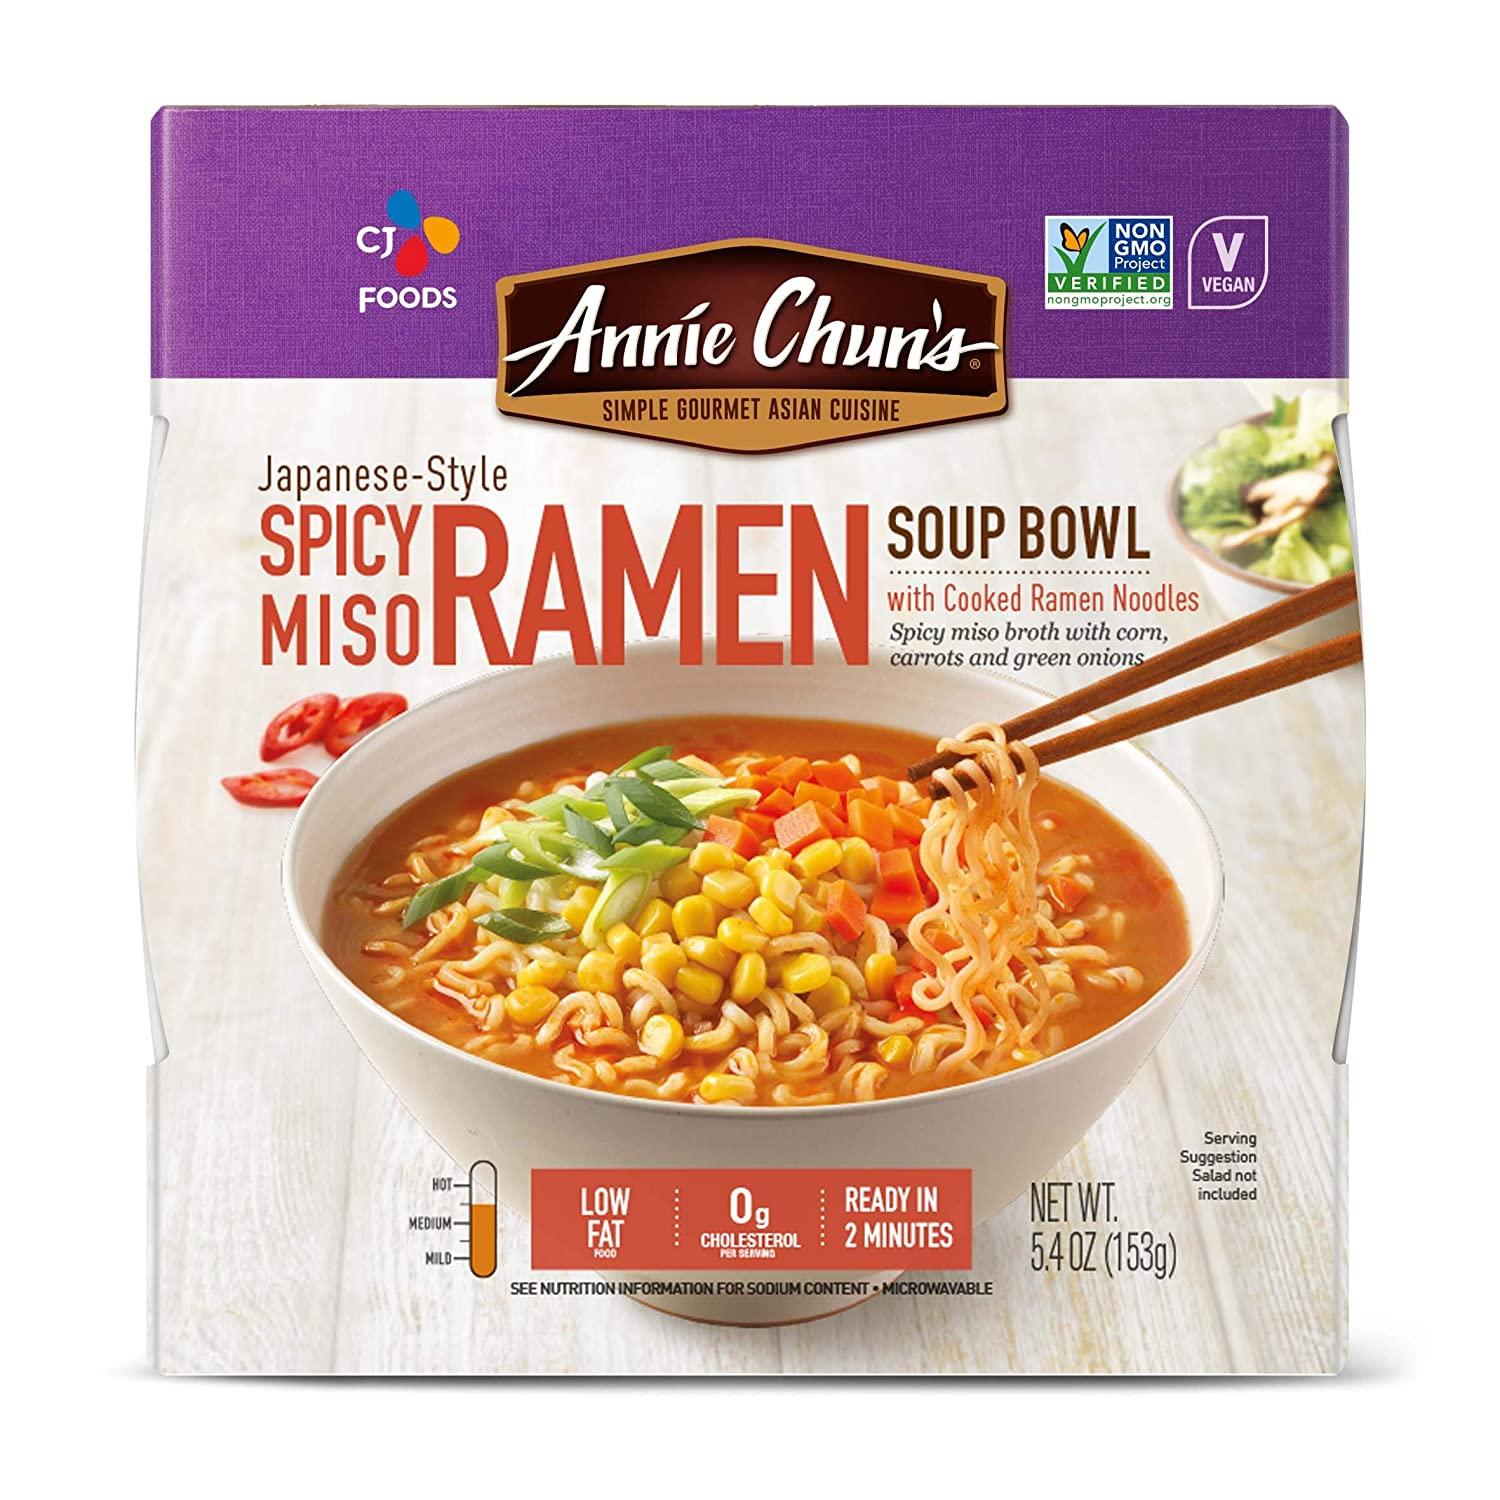 Annie Chun's Spicy Miso Ramen Noodle Bowl | Non-GMO, Vegan, Shelf-Stable (Pack Of 6) | Japanese-Style Savory Ready Meal